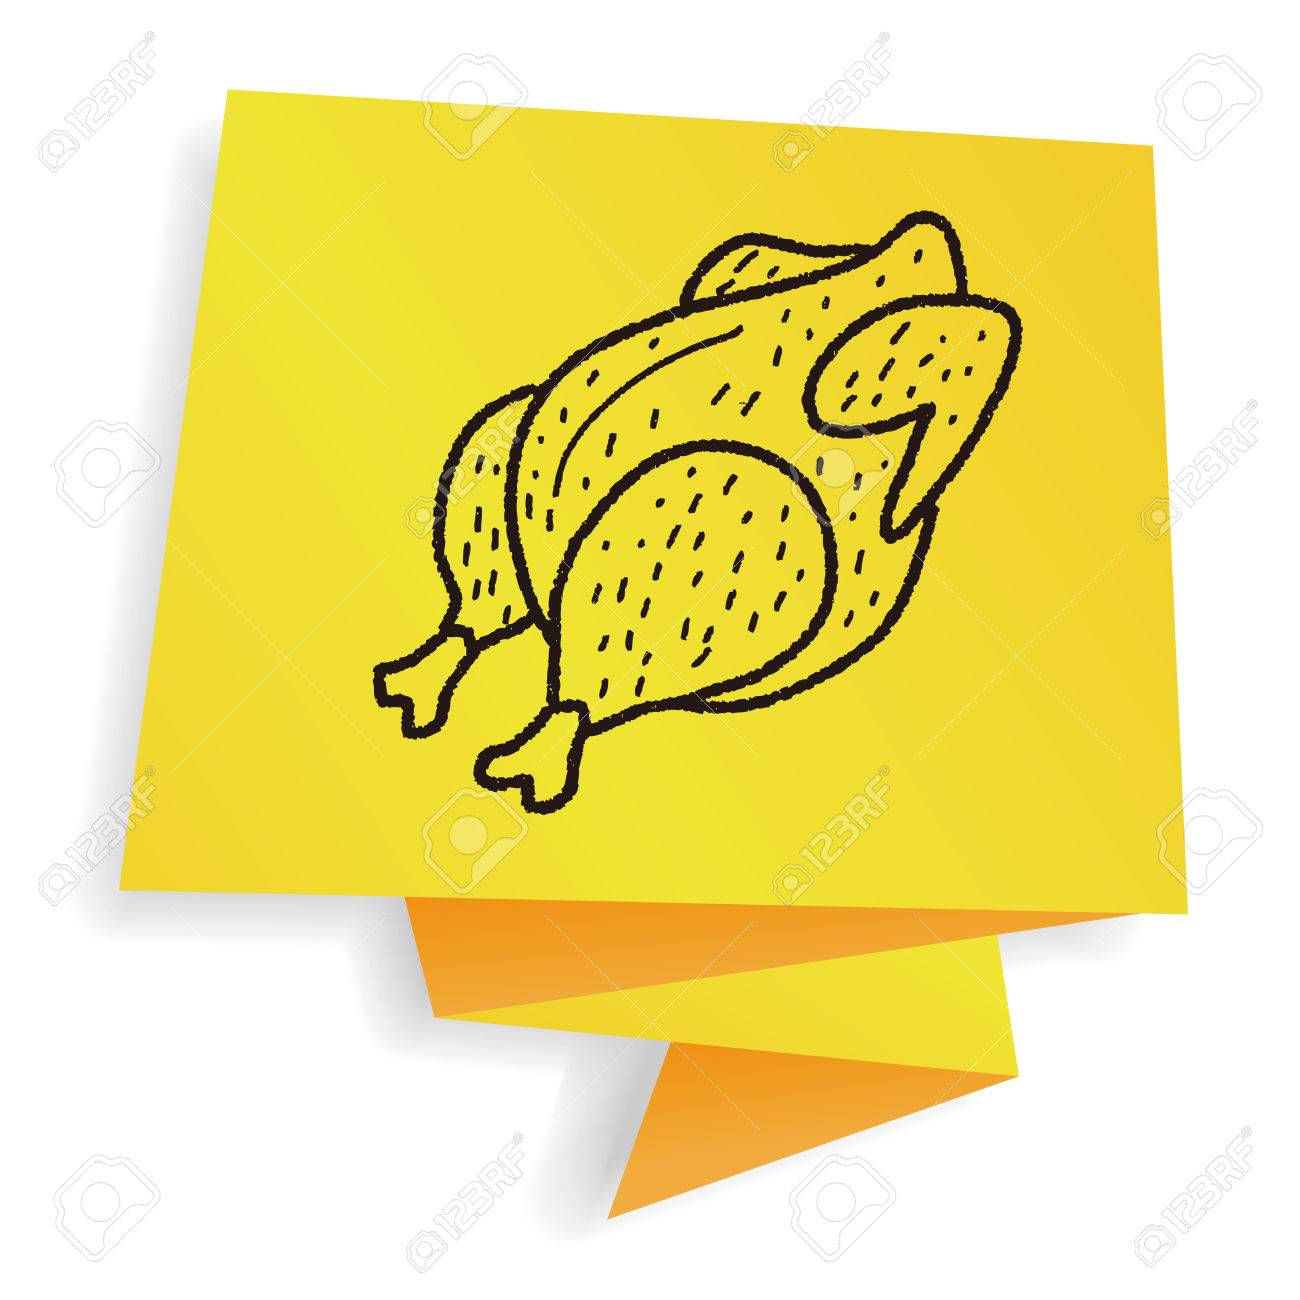 1300x1300 Roast Chicken Doodle Drawing Royalty Free Cliparts, Vectors,